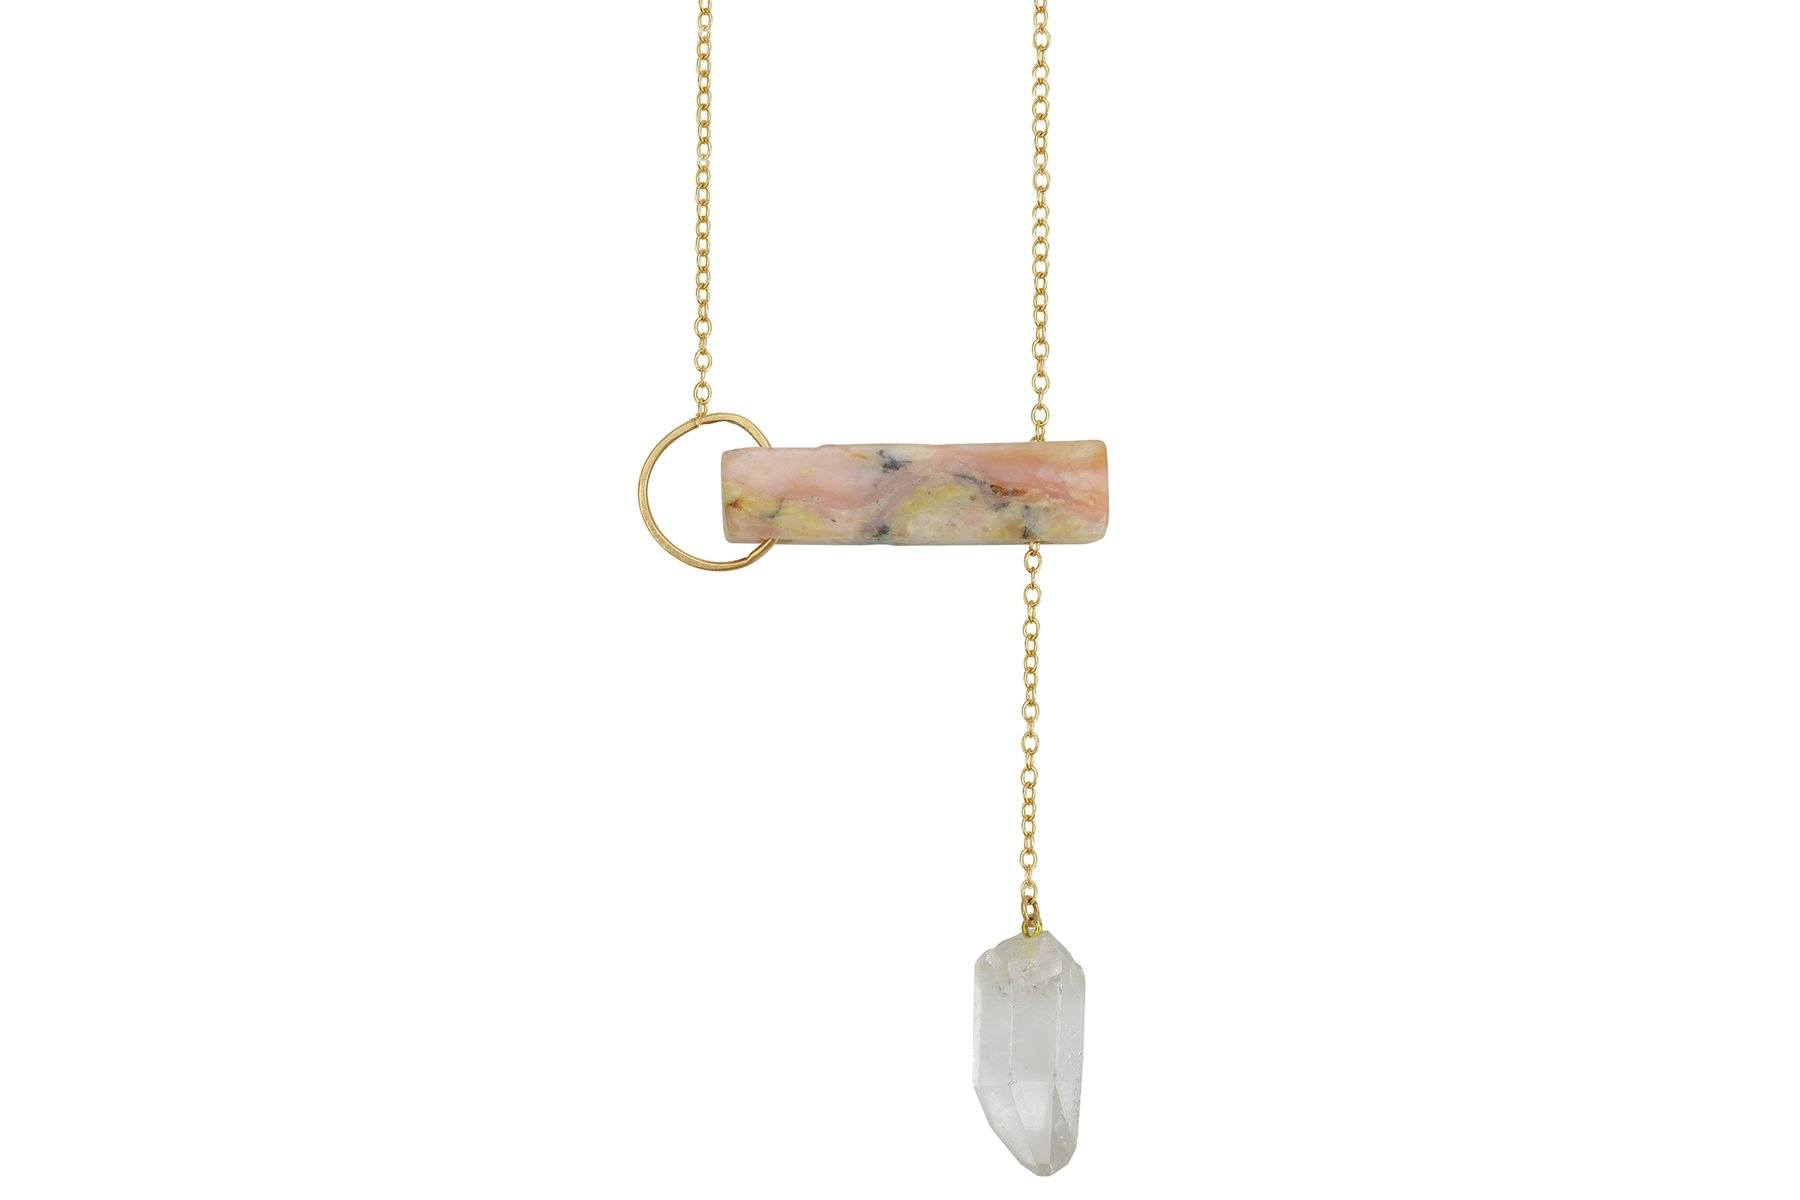 InSync necklace - Custom Pink Opal Bar & Clear Quartz Point - Amanda K Lockrow